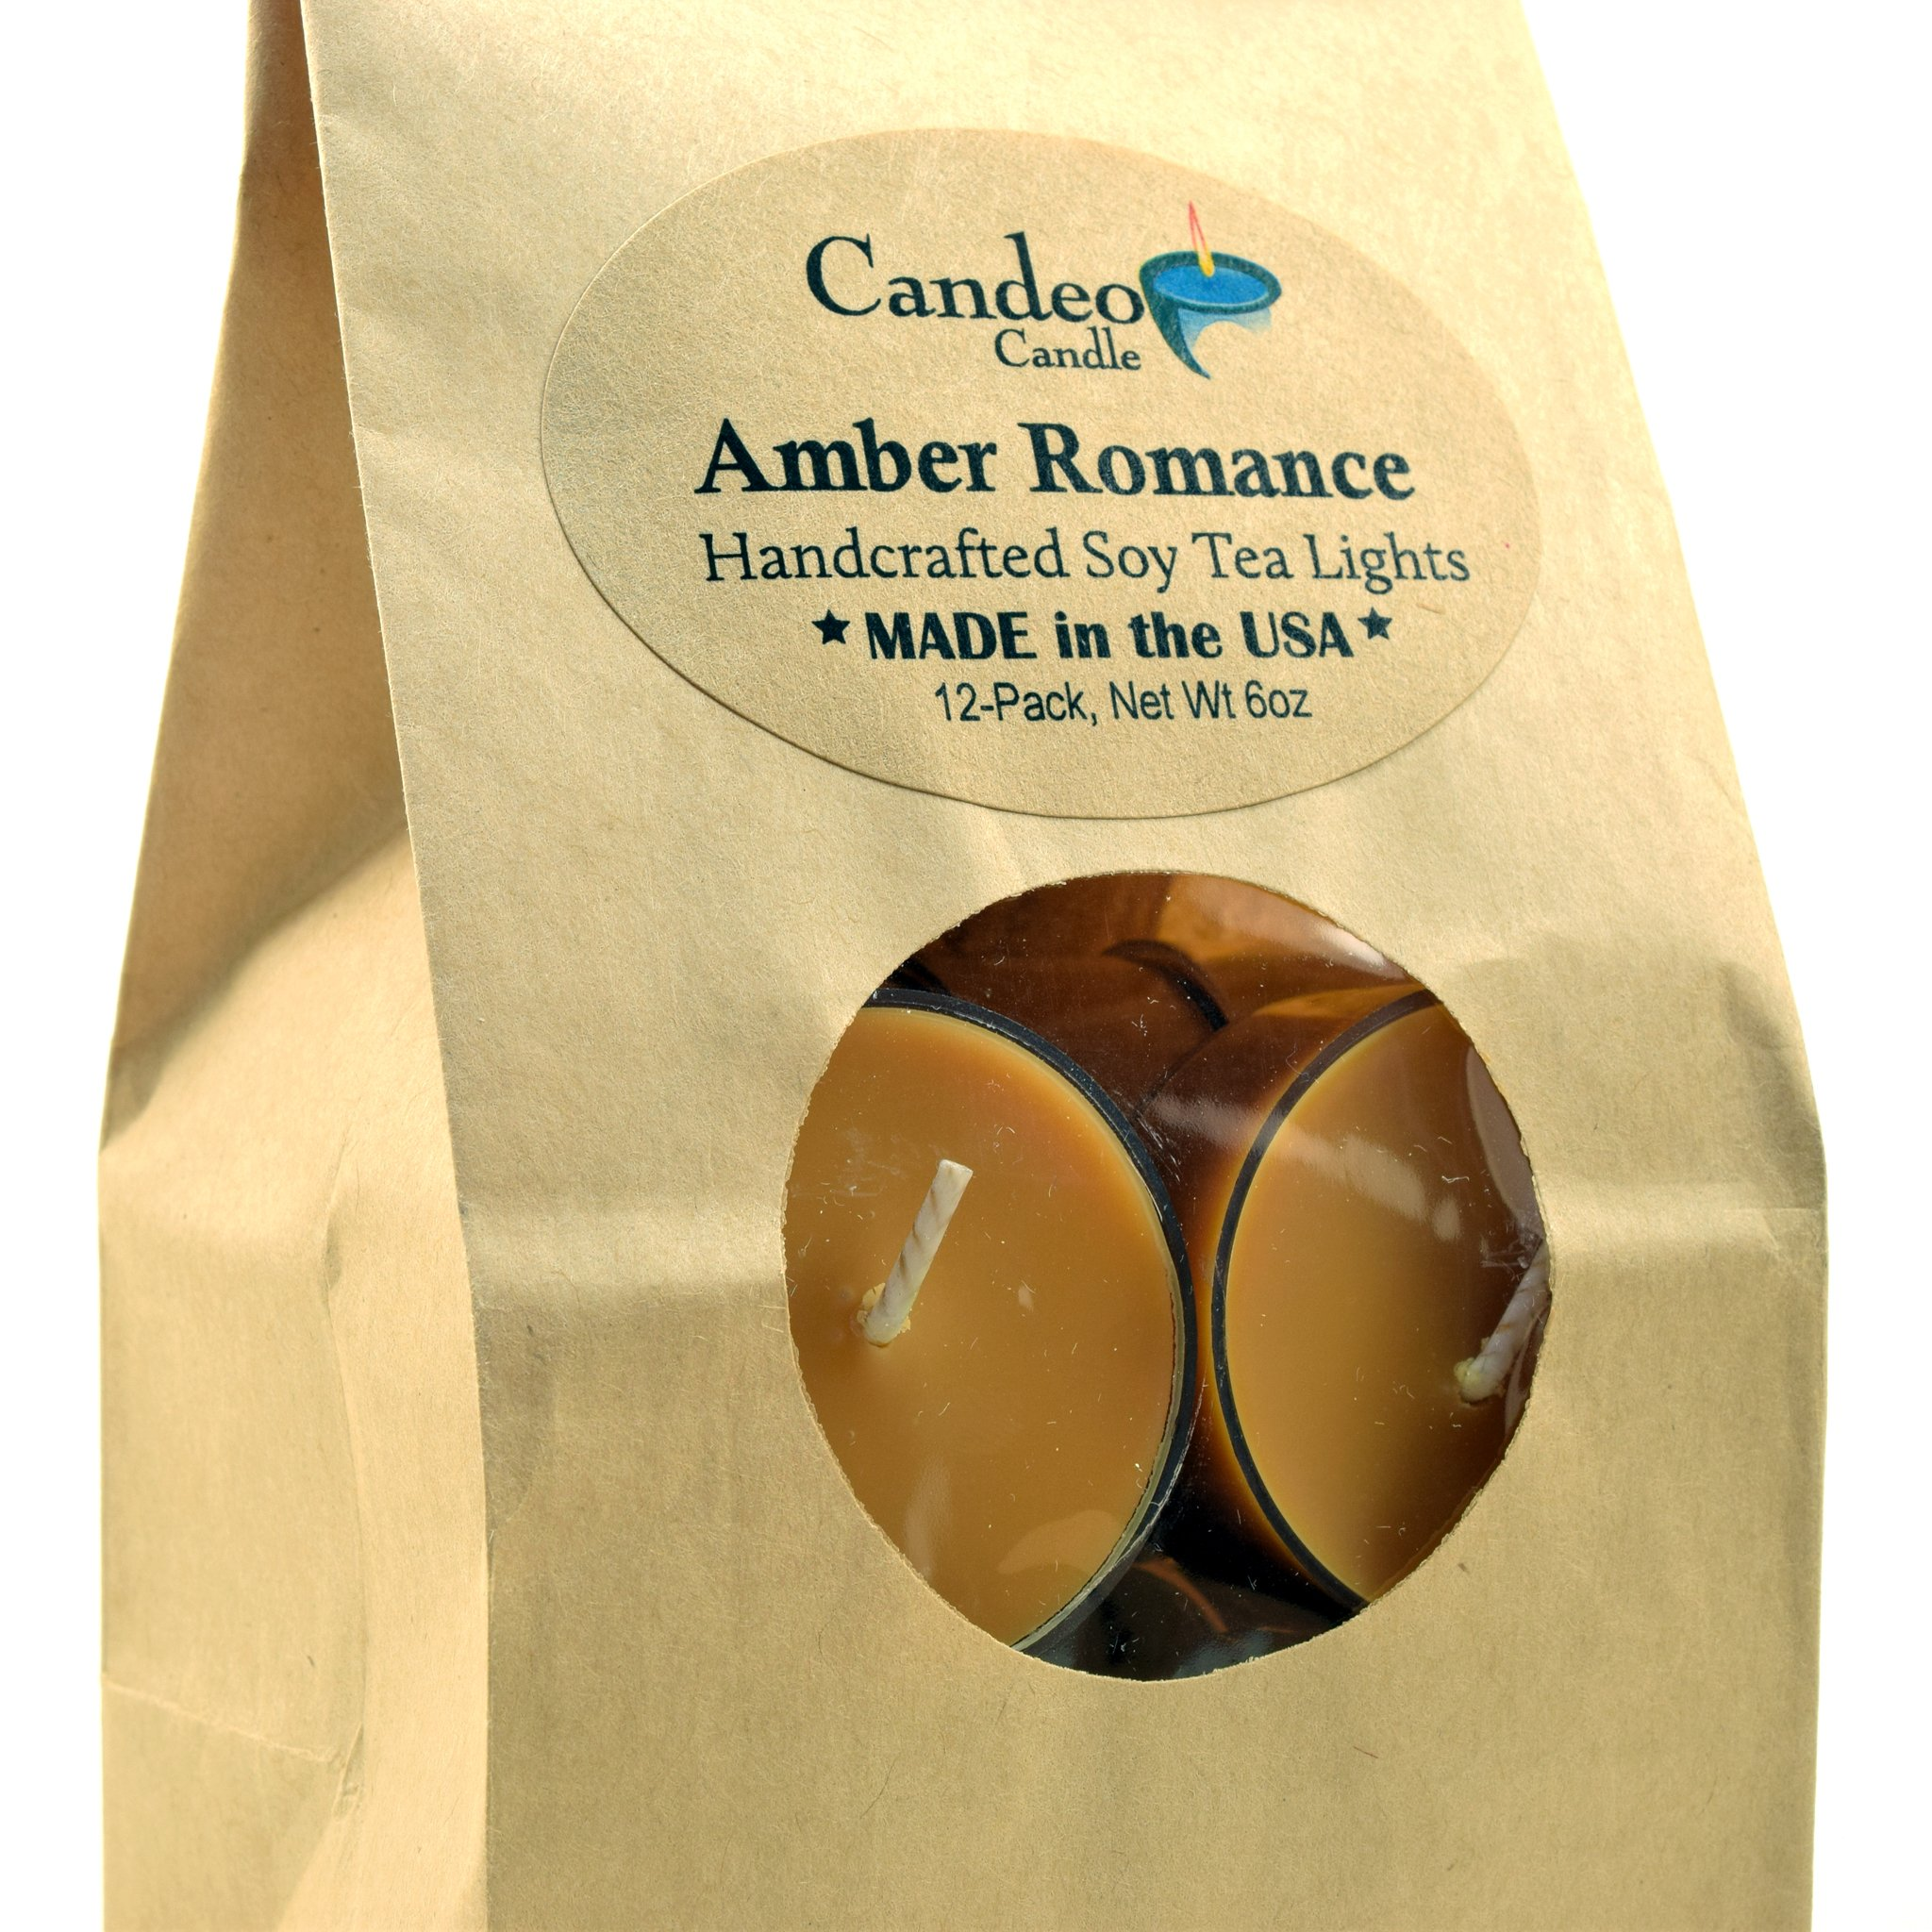 Amber Romance, Scented Soy Tealights, 12 Pack Clear Cup Candles